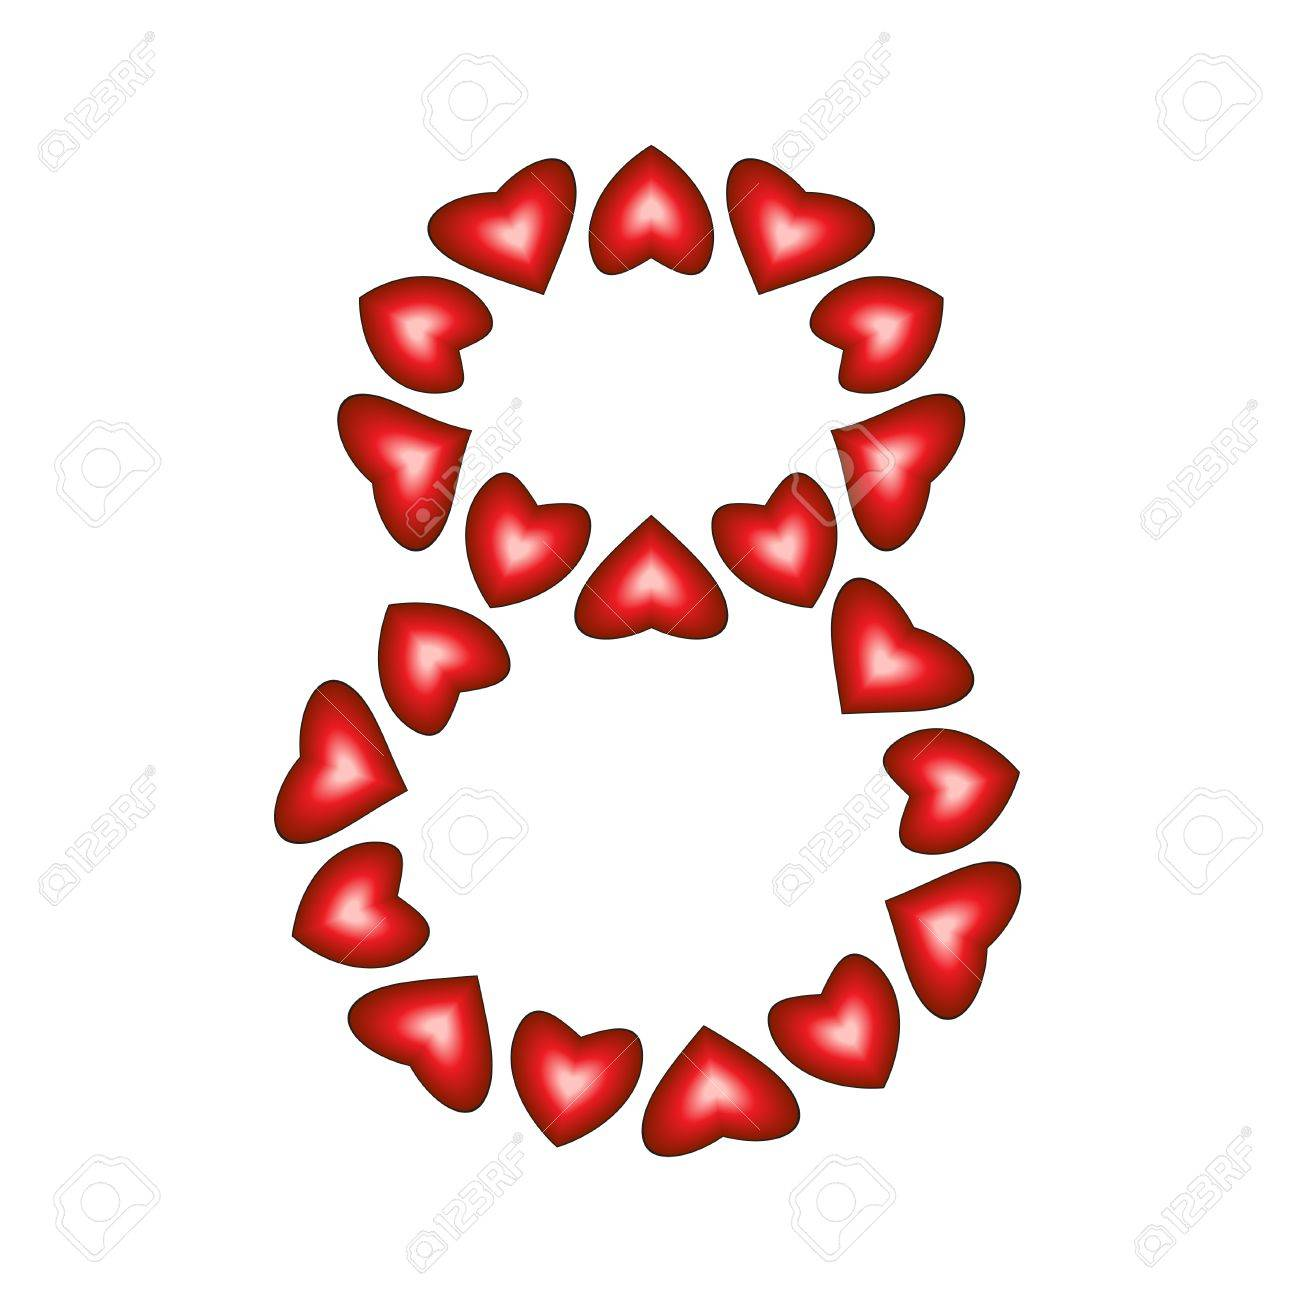 Number 8 made of hearts on white background Stock Vector - 15139219